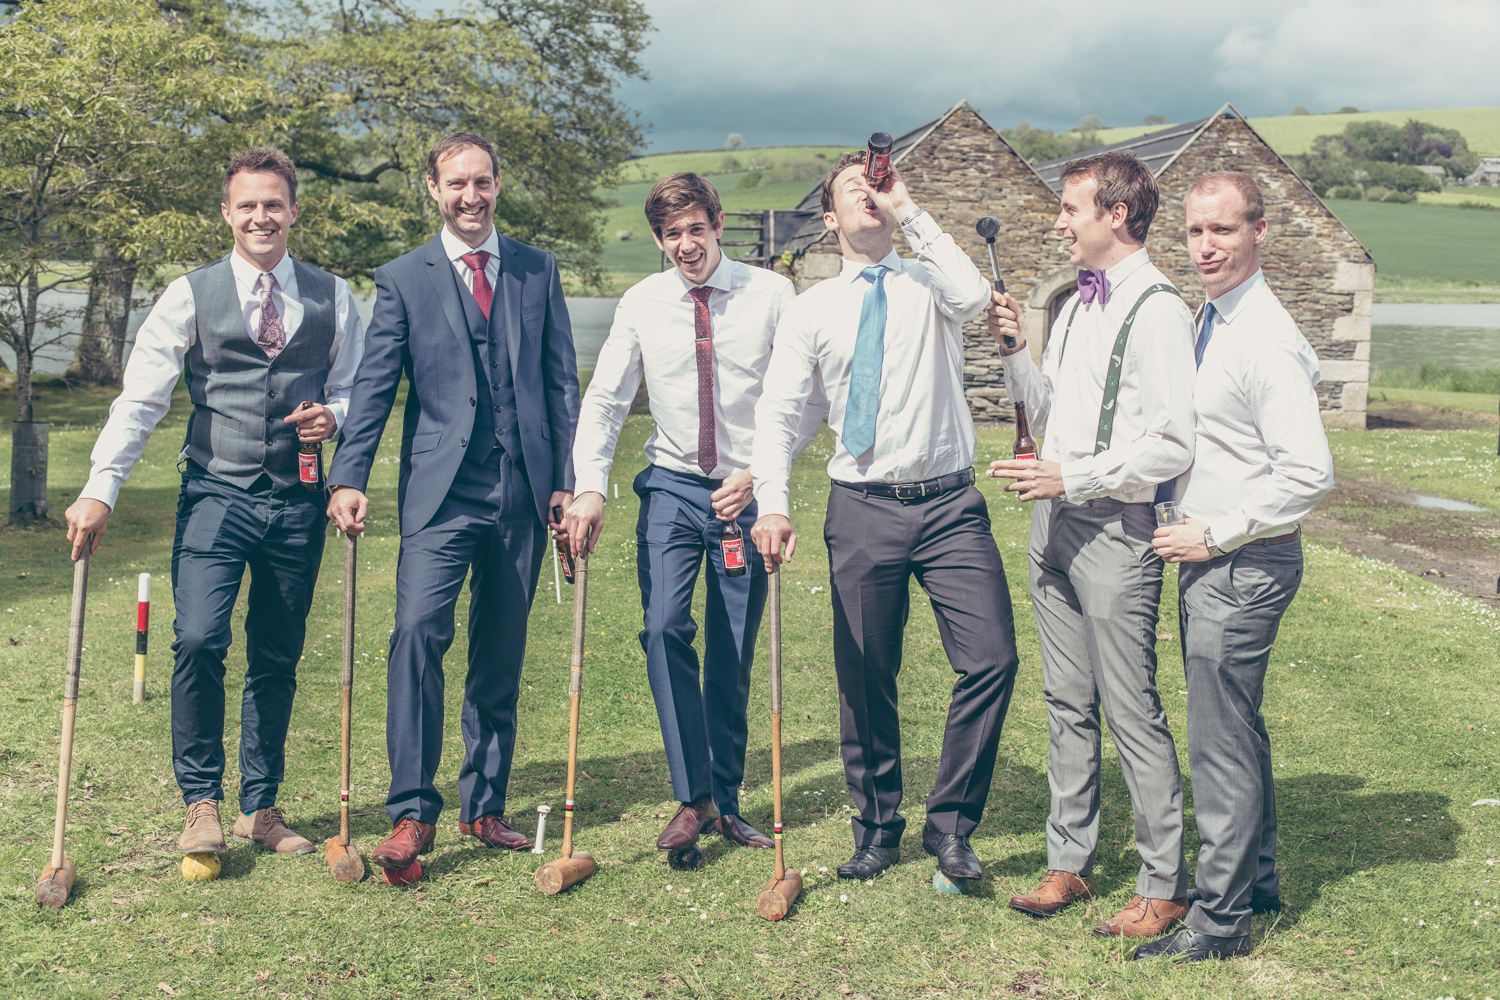 The wedding of Rebecca (Becky) English and Ben Major at Port Eliot, St Germans, Cornwall, UK on 24 May 2014.